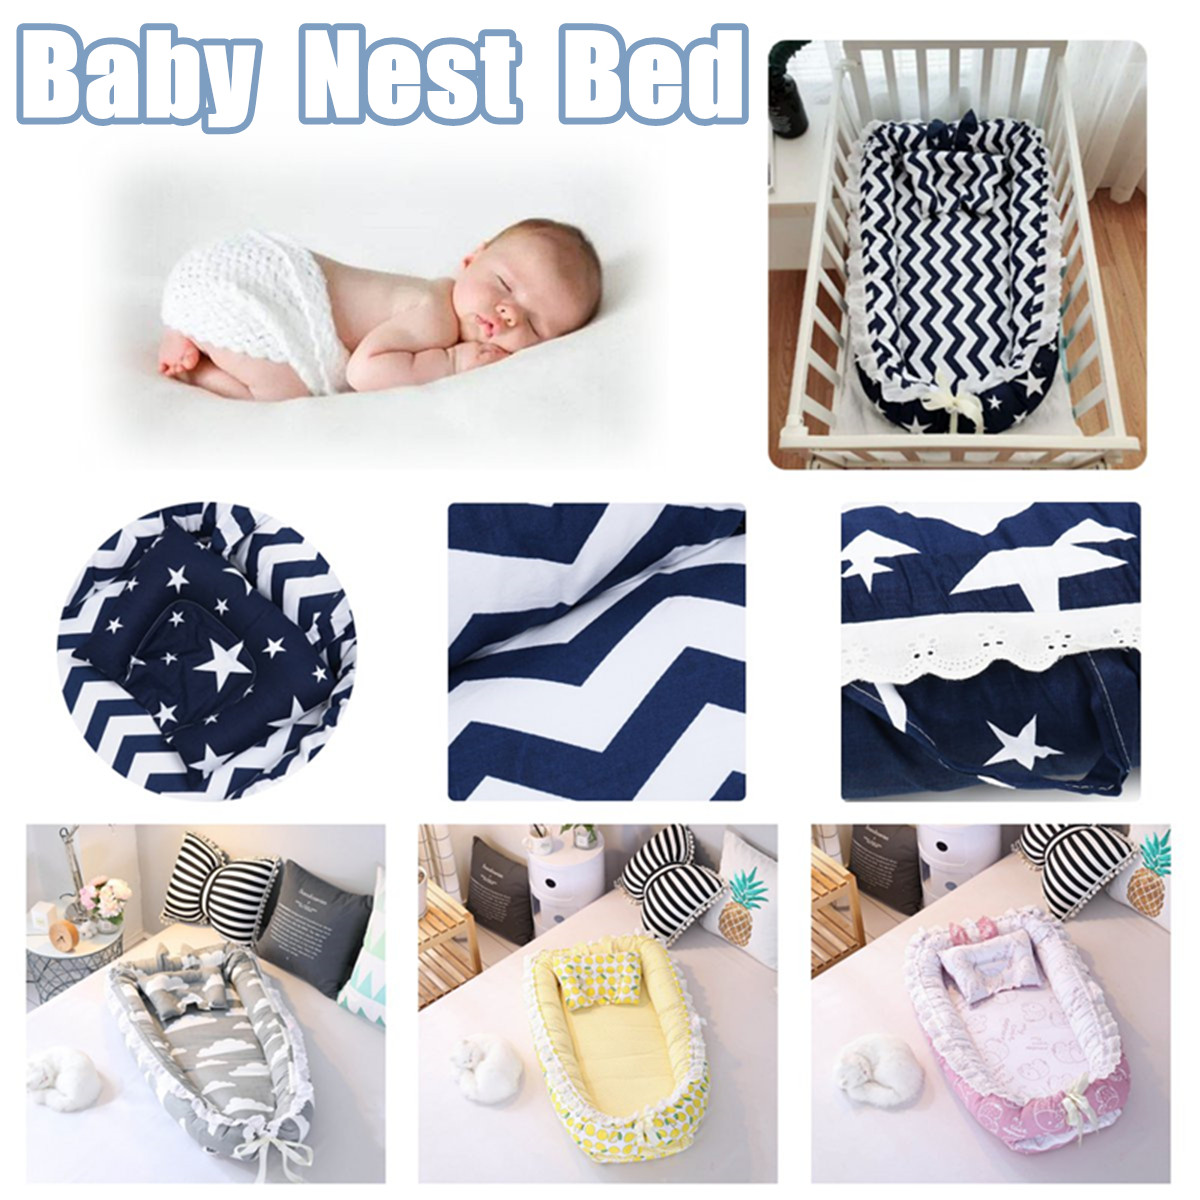 Portable Baby Nest Bed Crib Washable And Removable Crib Travel Bed For Children Infant Kids Pearl